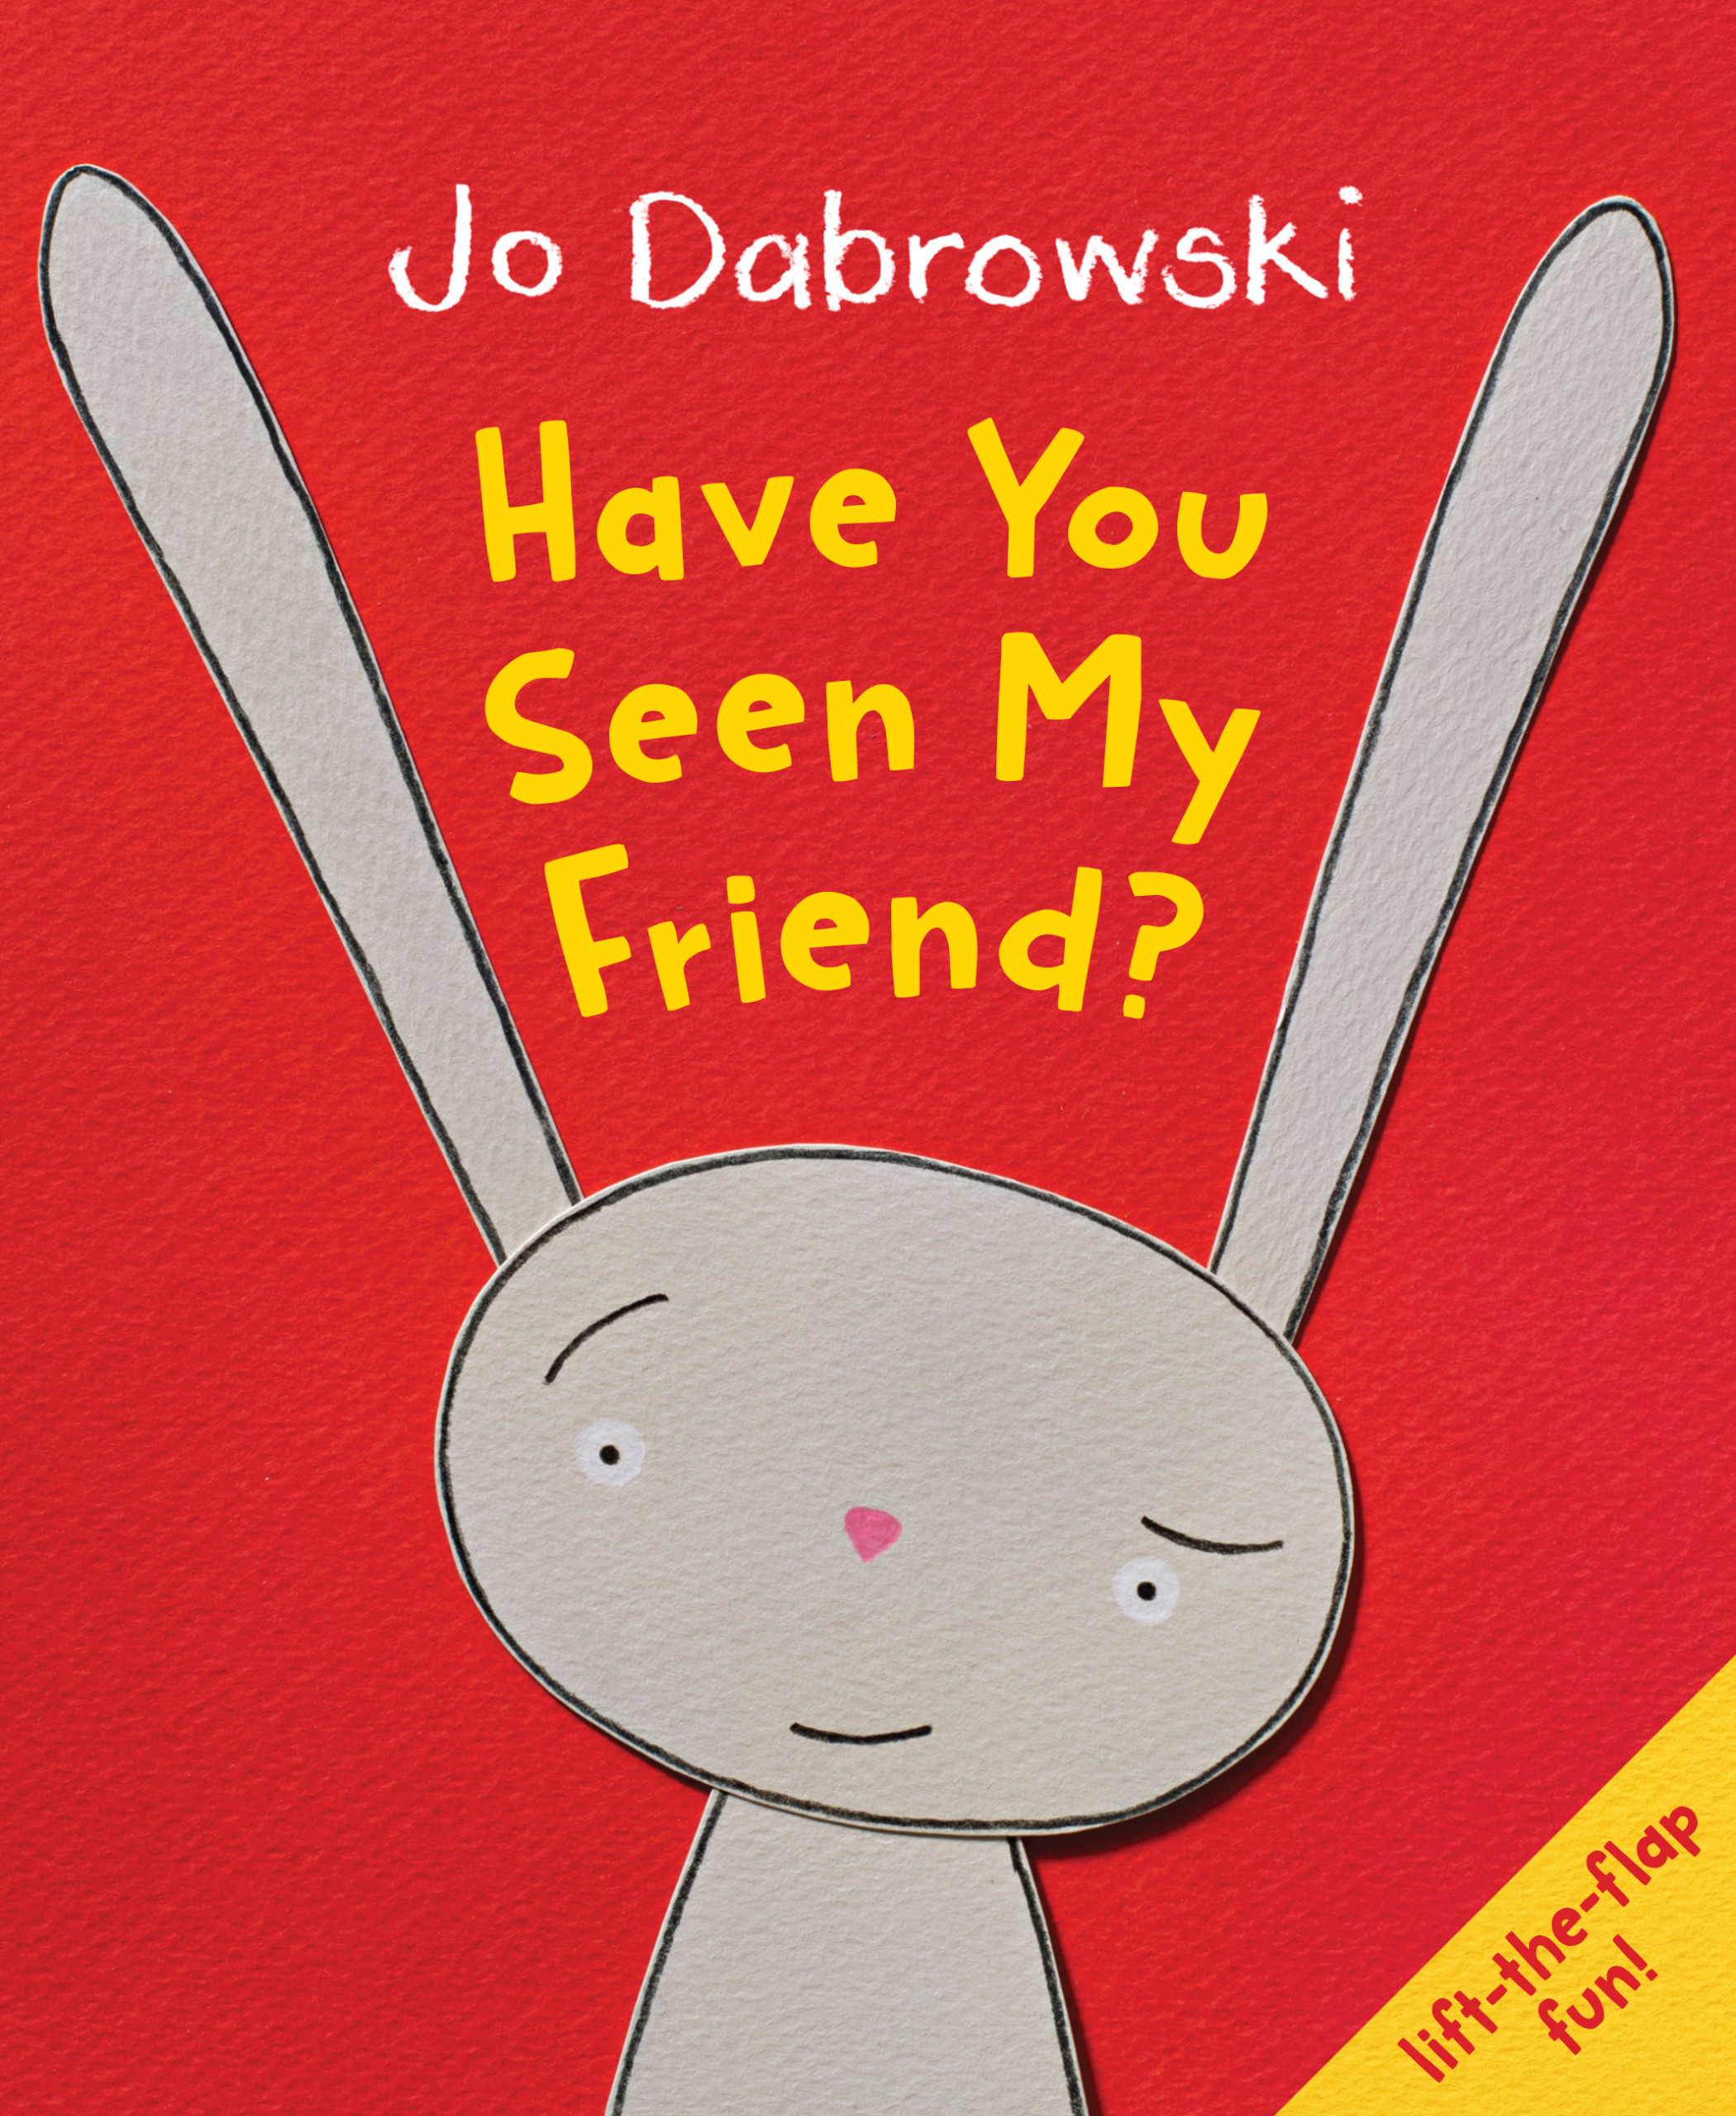 Have You Seen My Friend?